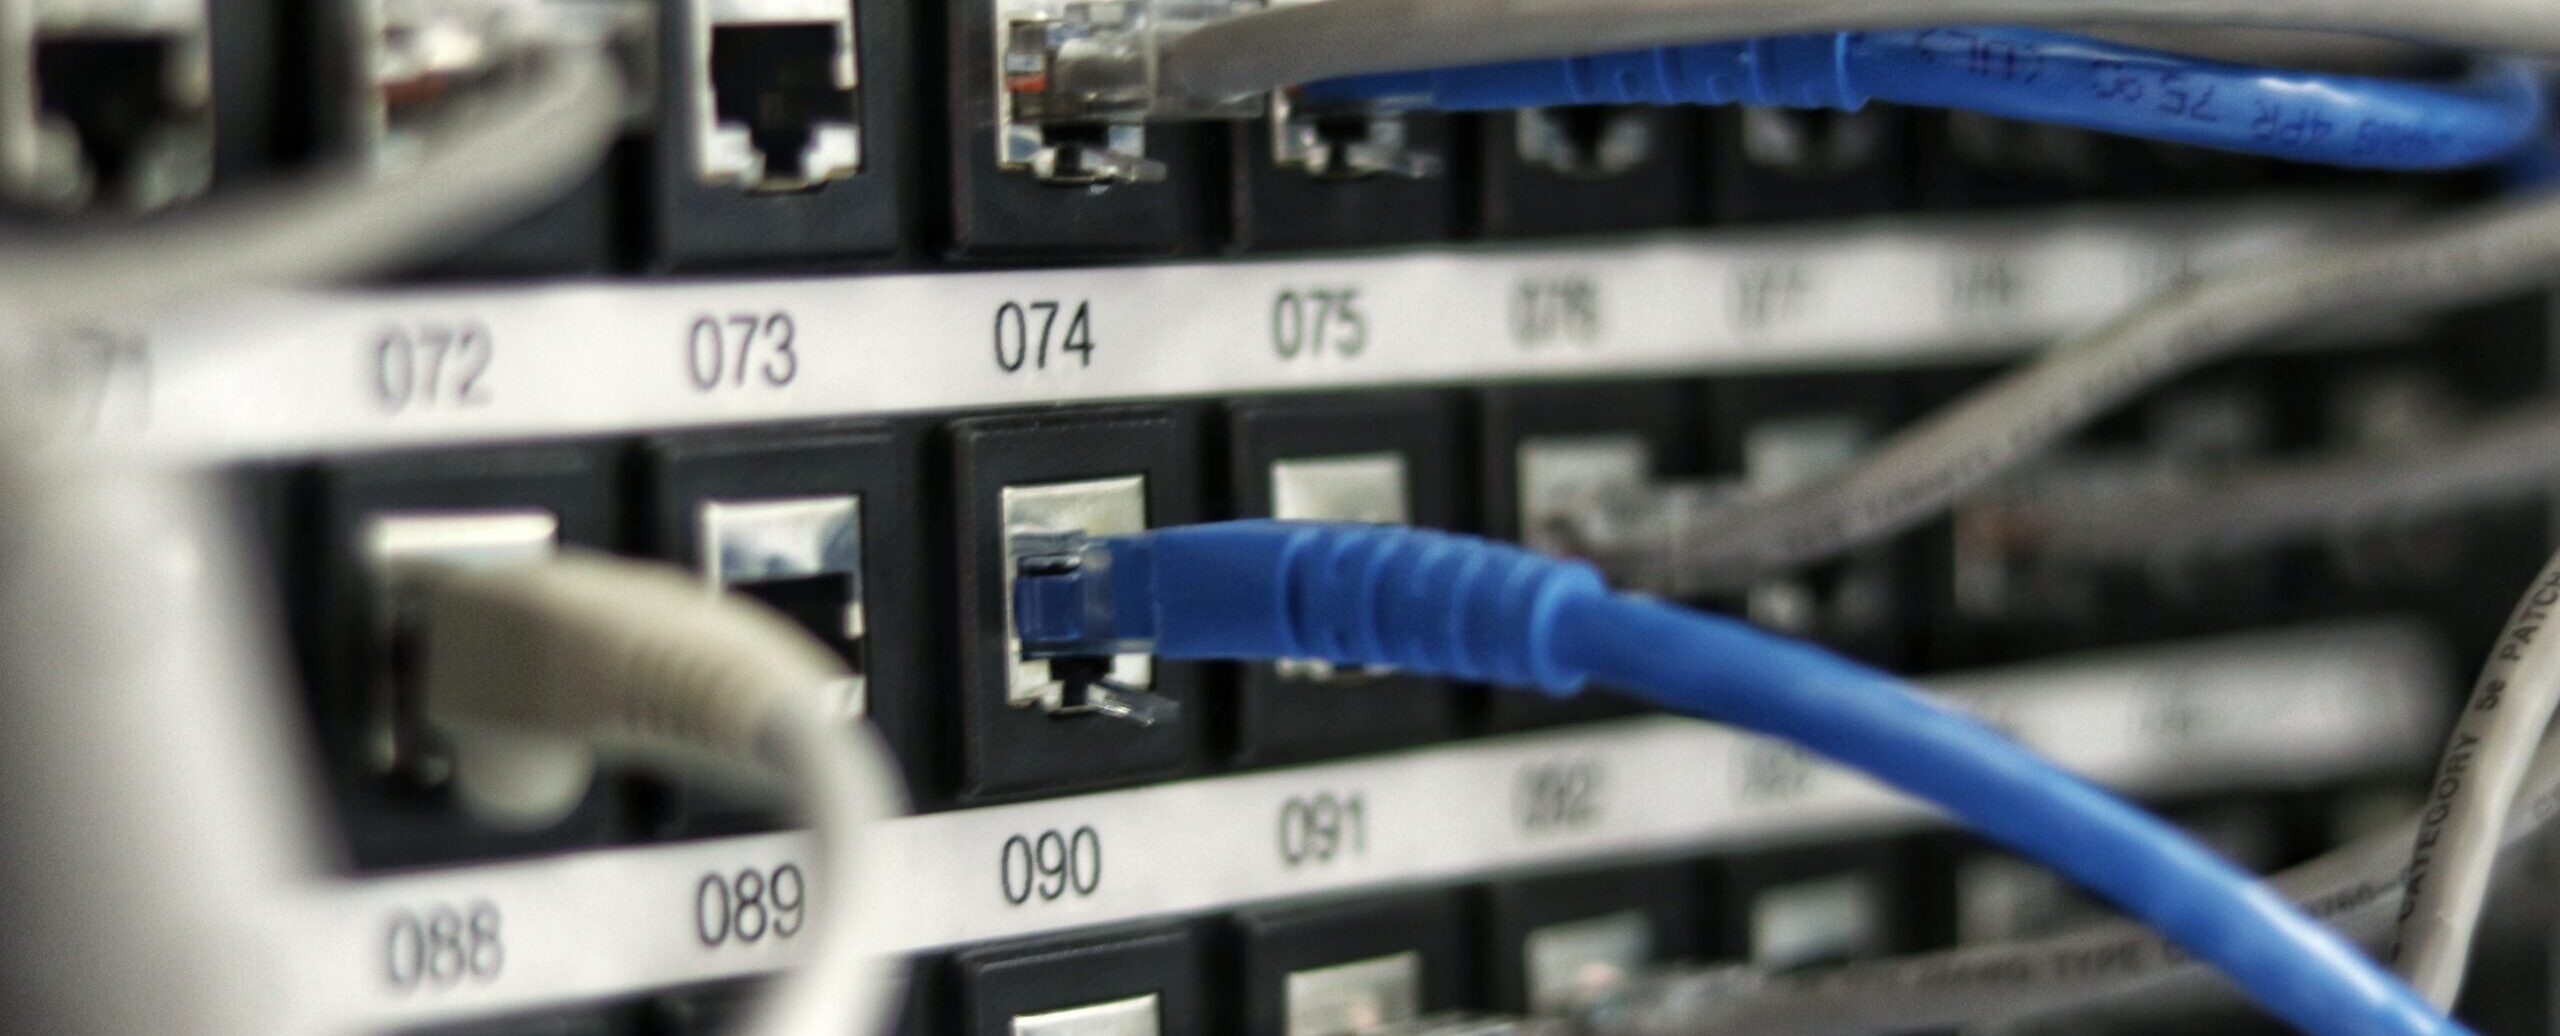 4 Tips To Optimize Your Company's Network Cable Infrastructure